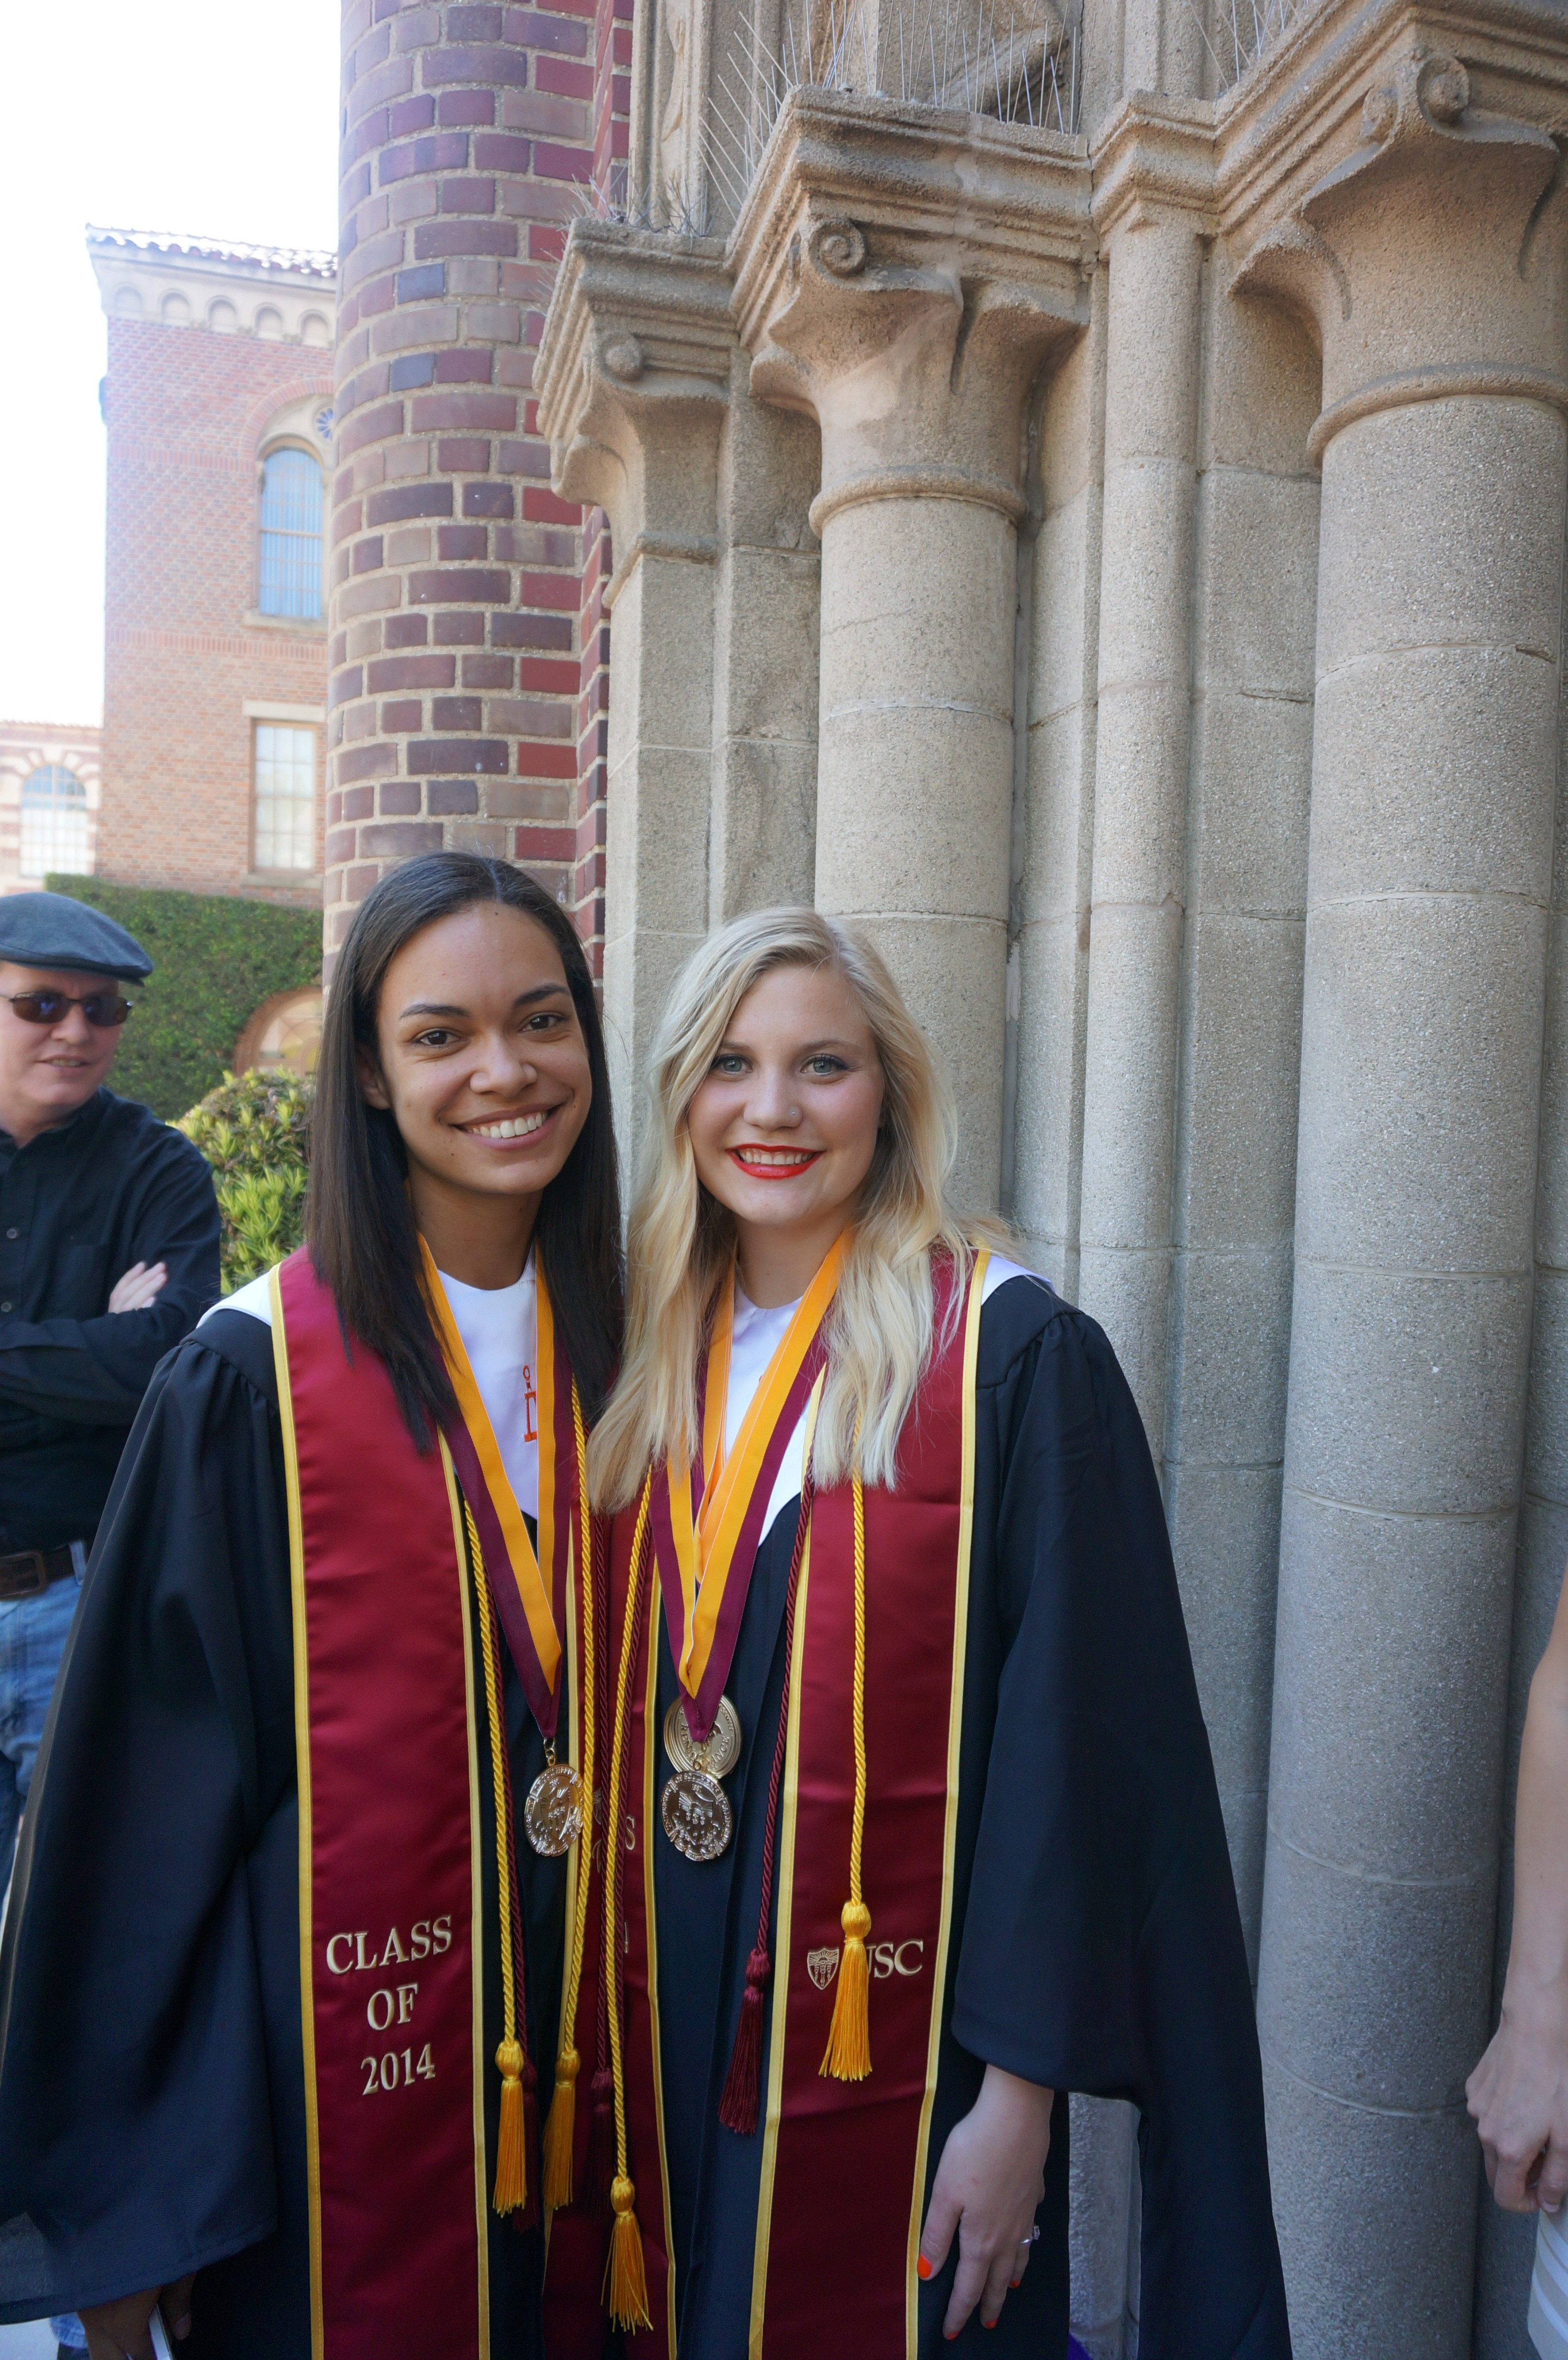 Aja Canyon (left) and Kirsten Rice were surprised and honored to be named to the Order of the Laurel and the Palm, awarded to undergraduates who have exemplary leadership and excellent scholarship.